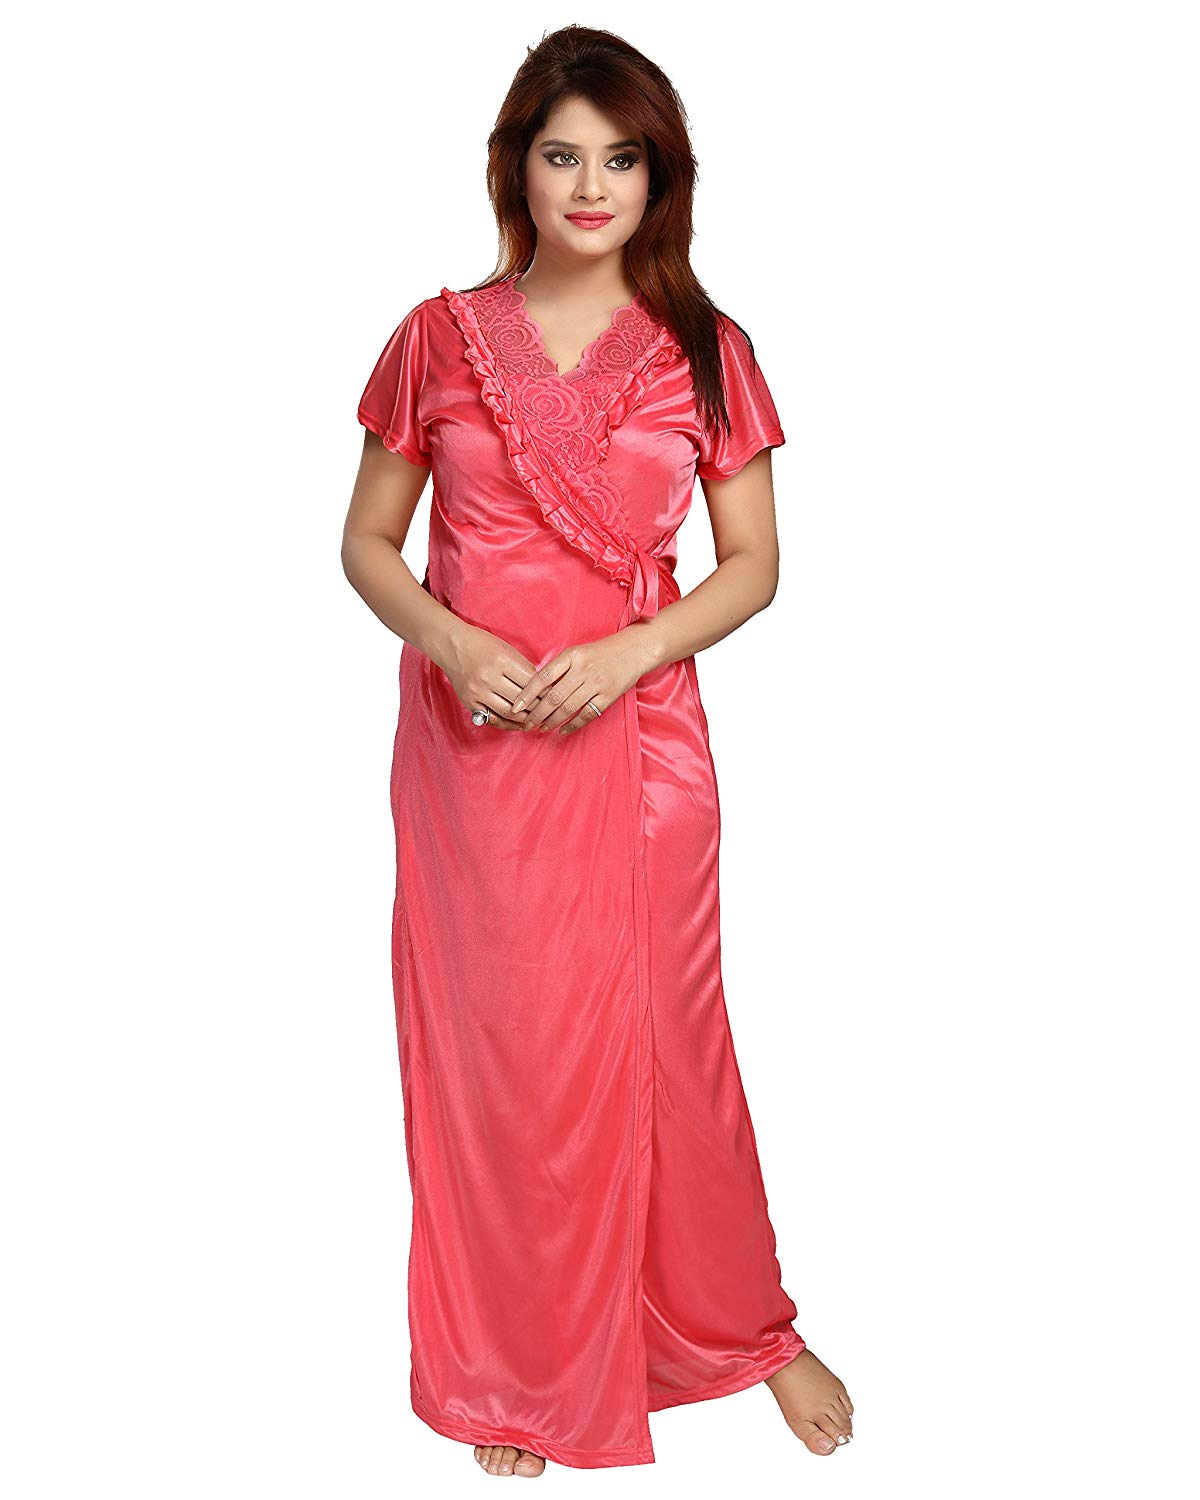 5cd513b90b Cheap satin 2 piece nighty, find satin 2 piece nighty deals on line ...